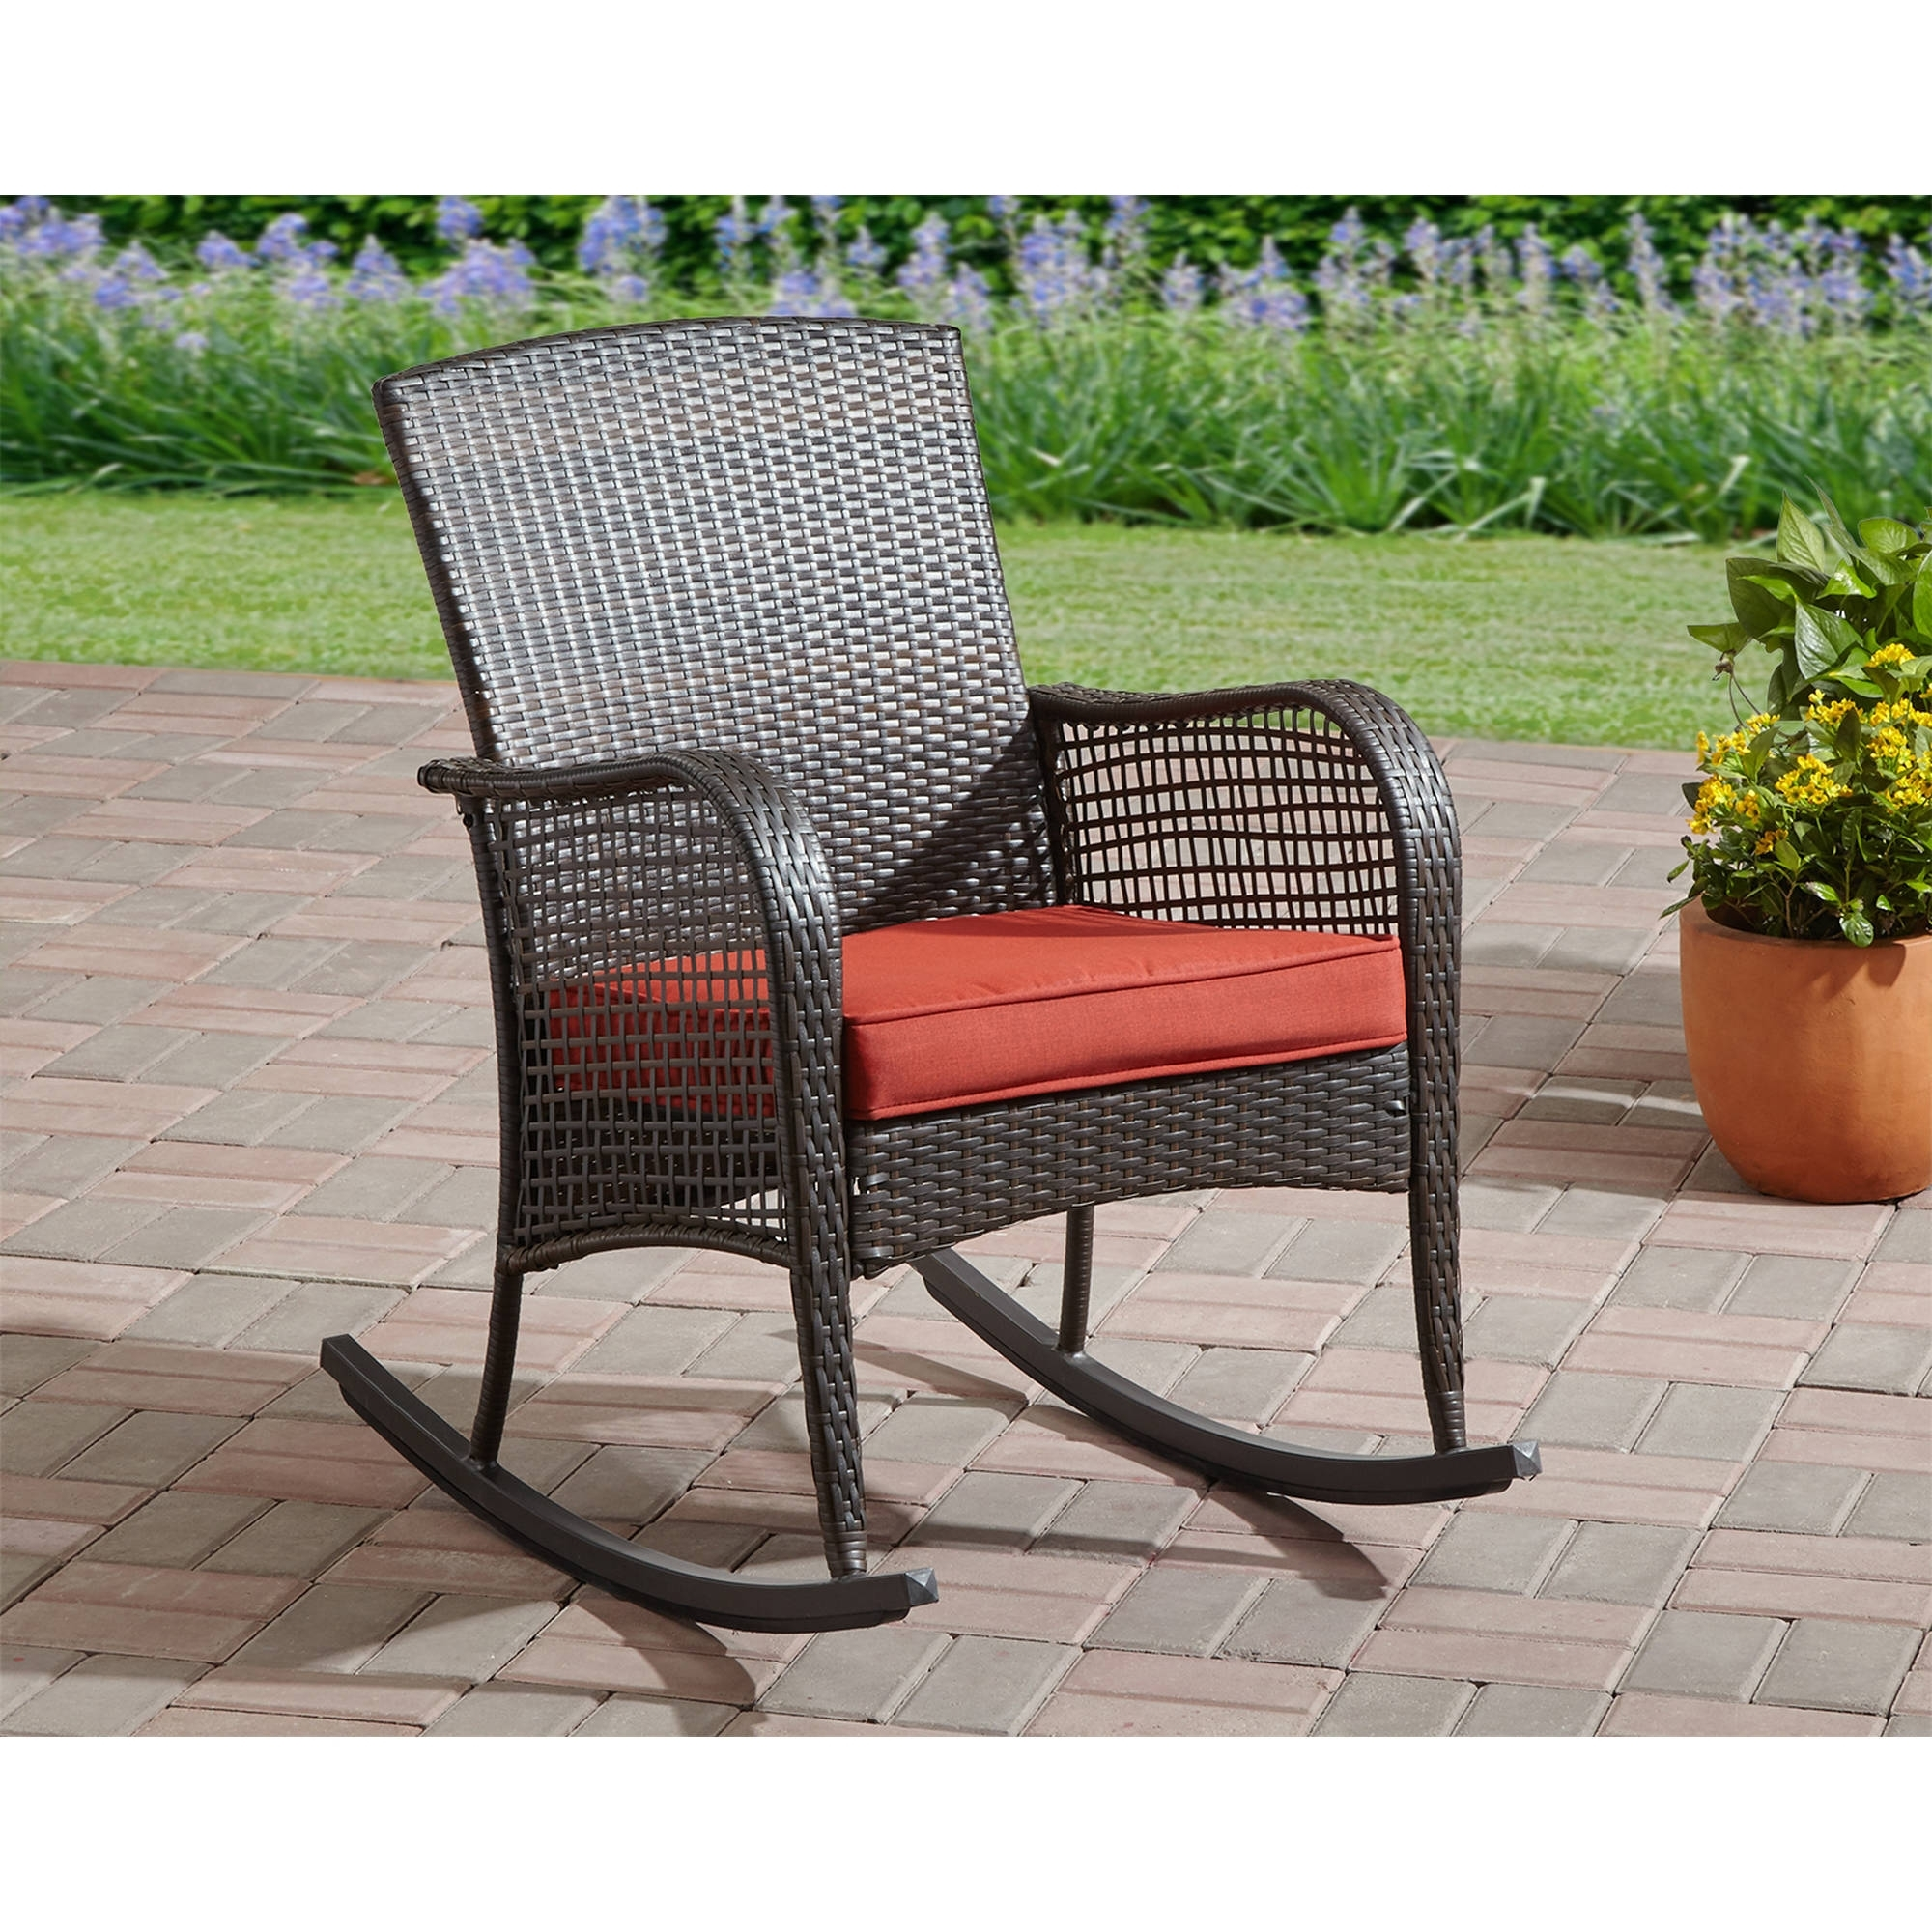 Rocking Chair Cushion Seat Wicker Steel Frame Outdoor Patio Deck Intended For Outdoor Wicker Rocking Chairs With Cushions (#13 of 15)